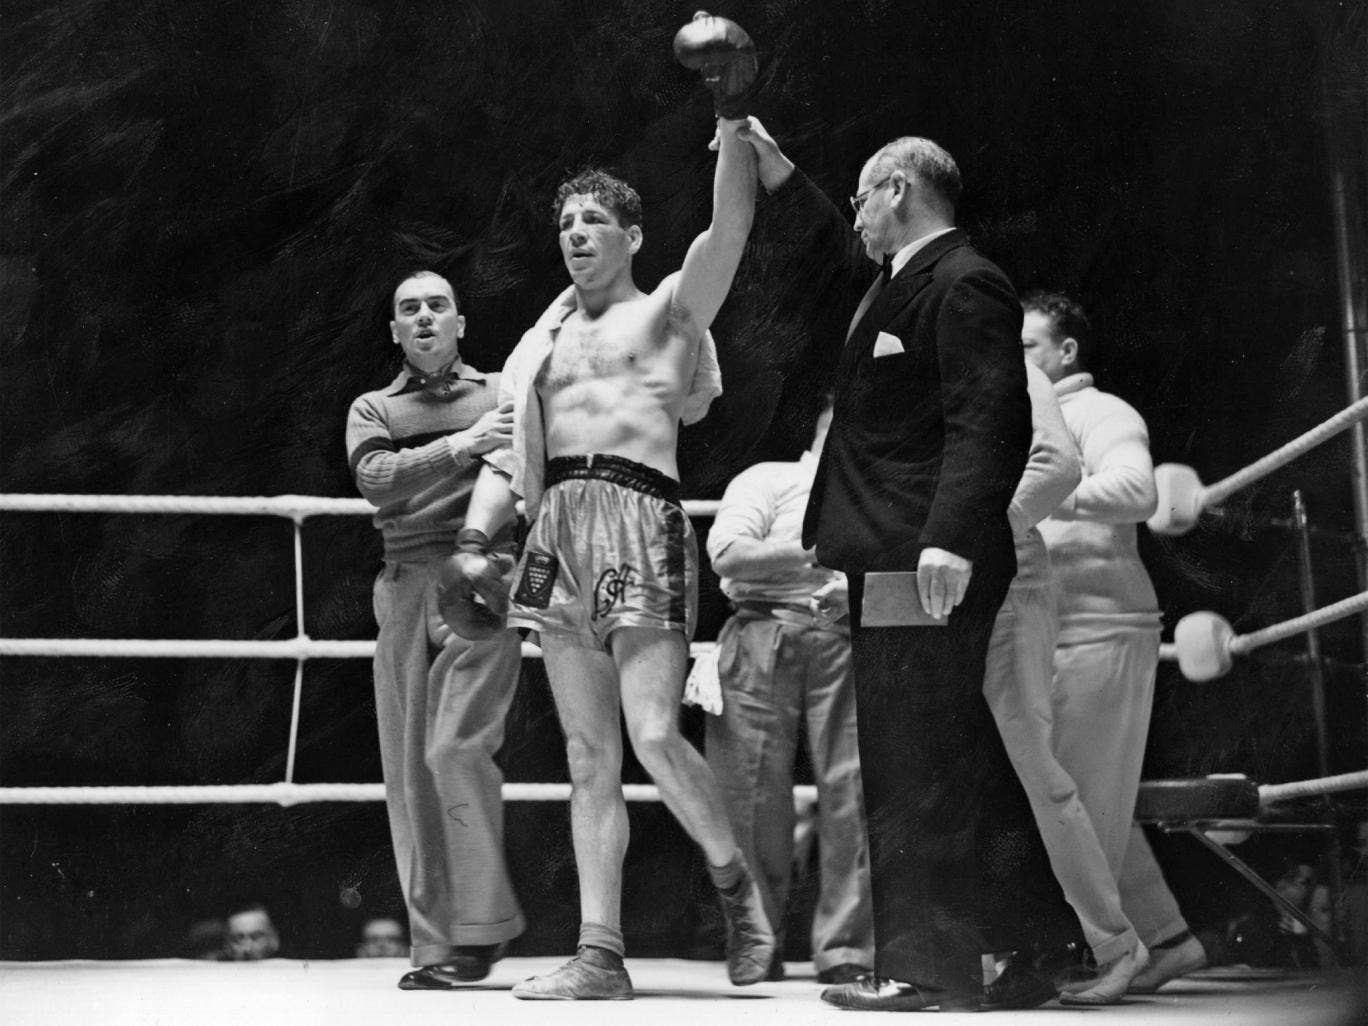 Len Harvey after beating Jock McAvoy in 1939, a fight some reports claim was watched by 200,000 people at the White City Stadium